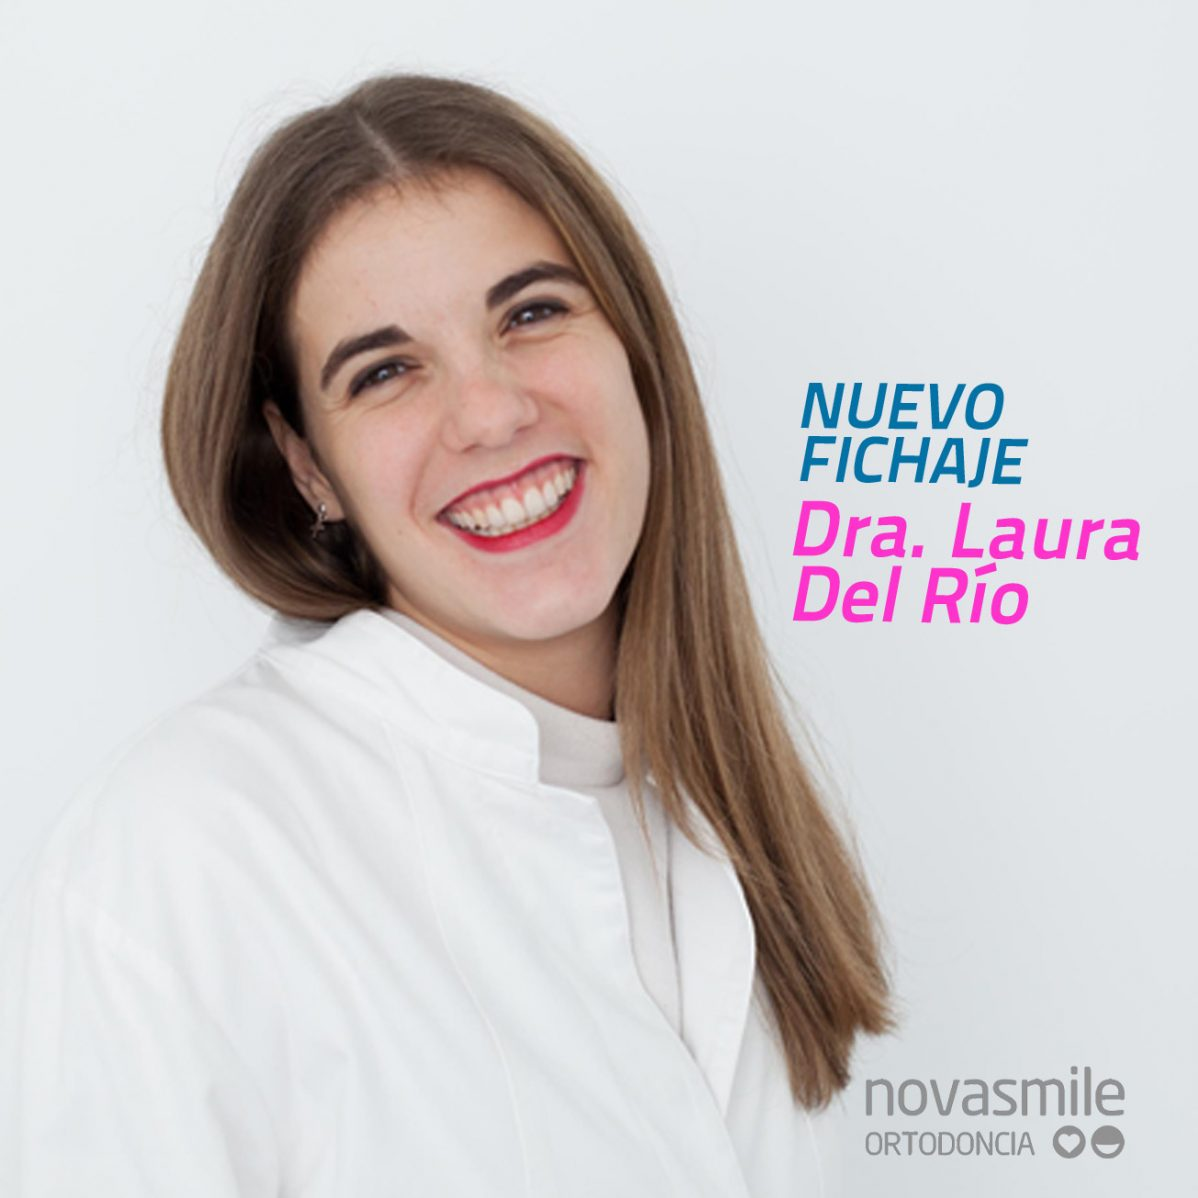 ortodoncista-exclusivo-novasmile